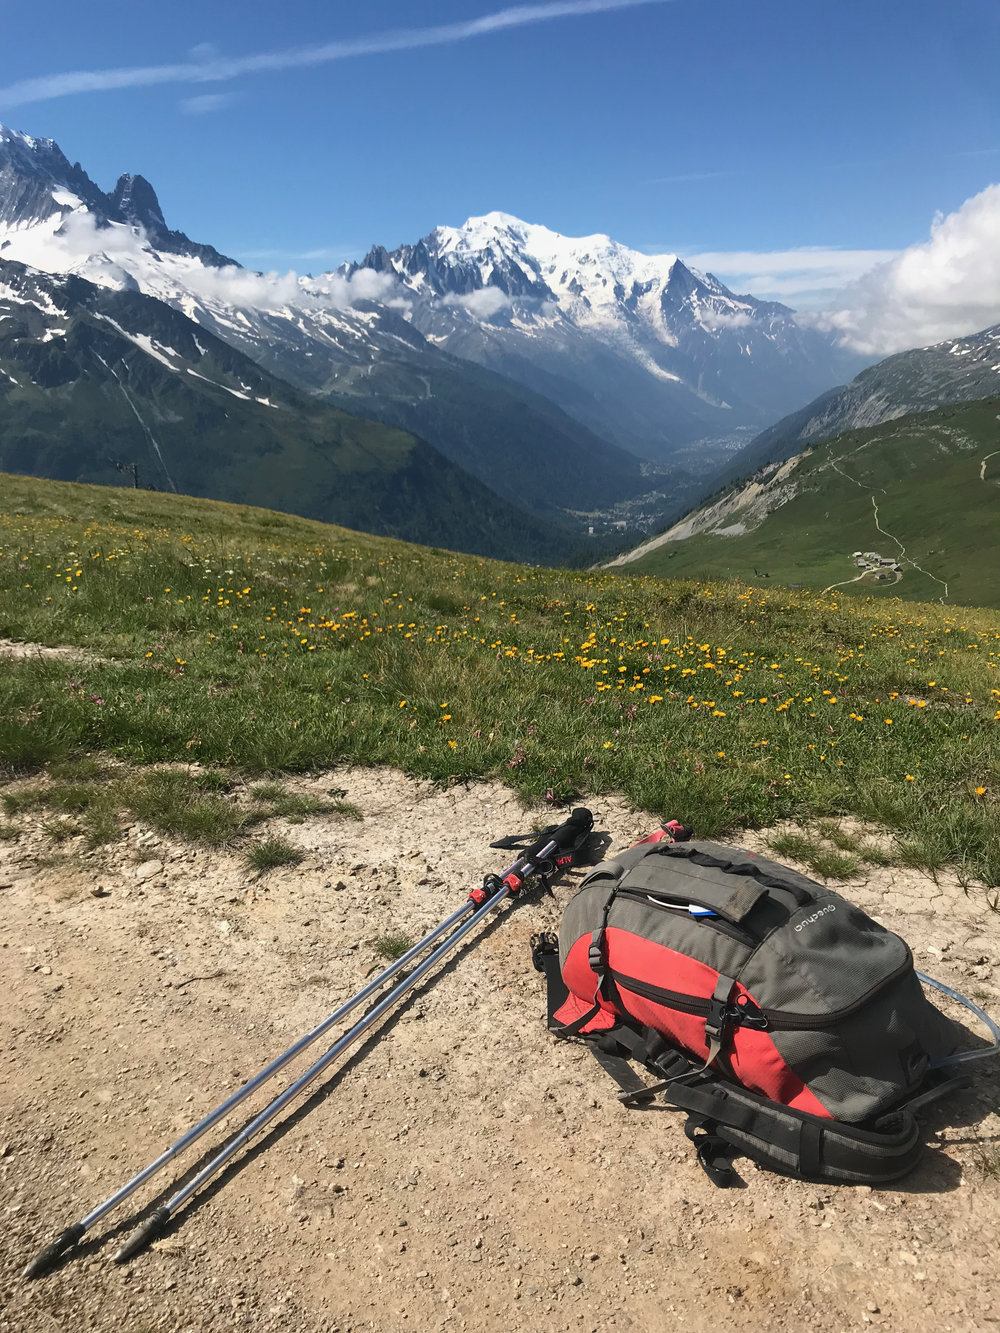 The final view towards Mont Blanc (centre) and Chamonix in the valley below.....